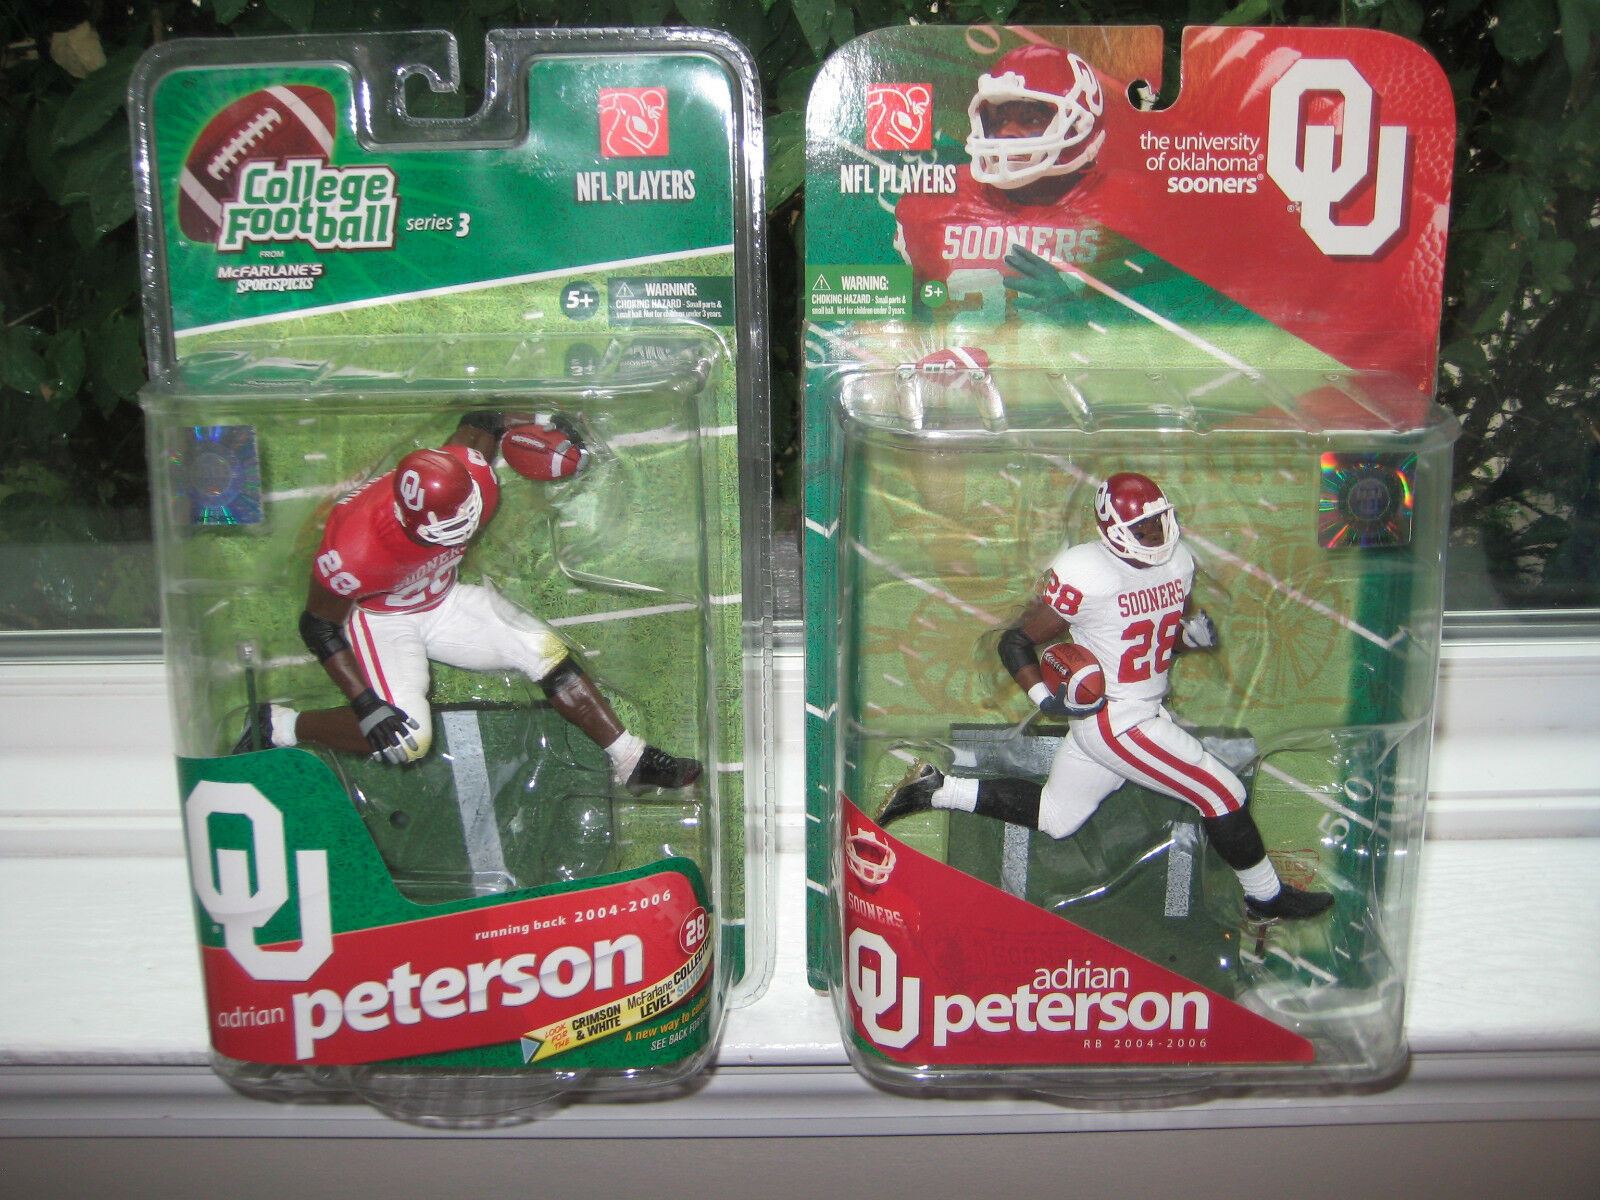 MCFARLANE NCAA 1 & 3 ADRIAN PETERSON COLLECTOR LEVEL CHASE VARIANT  574/750 LOT